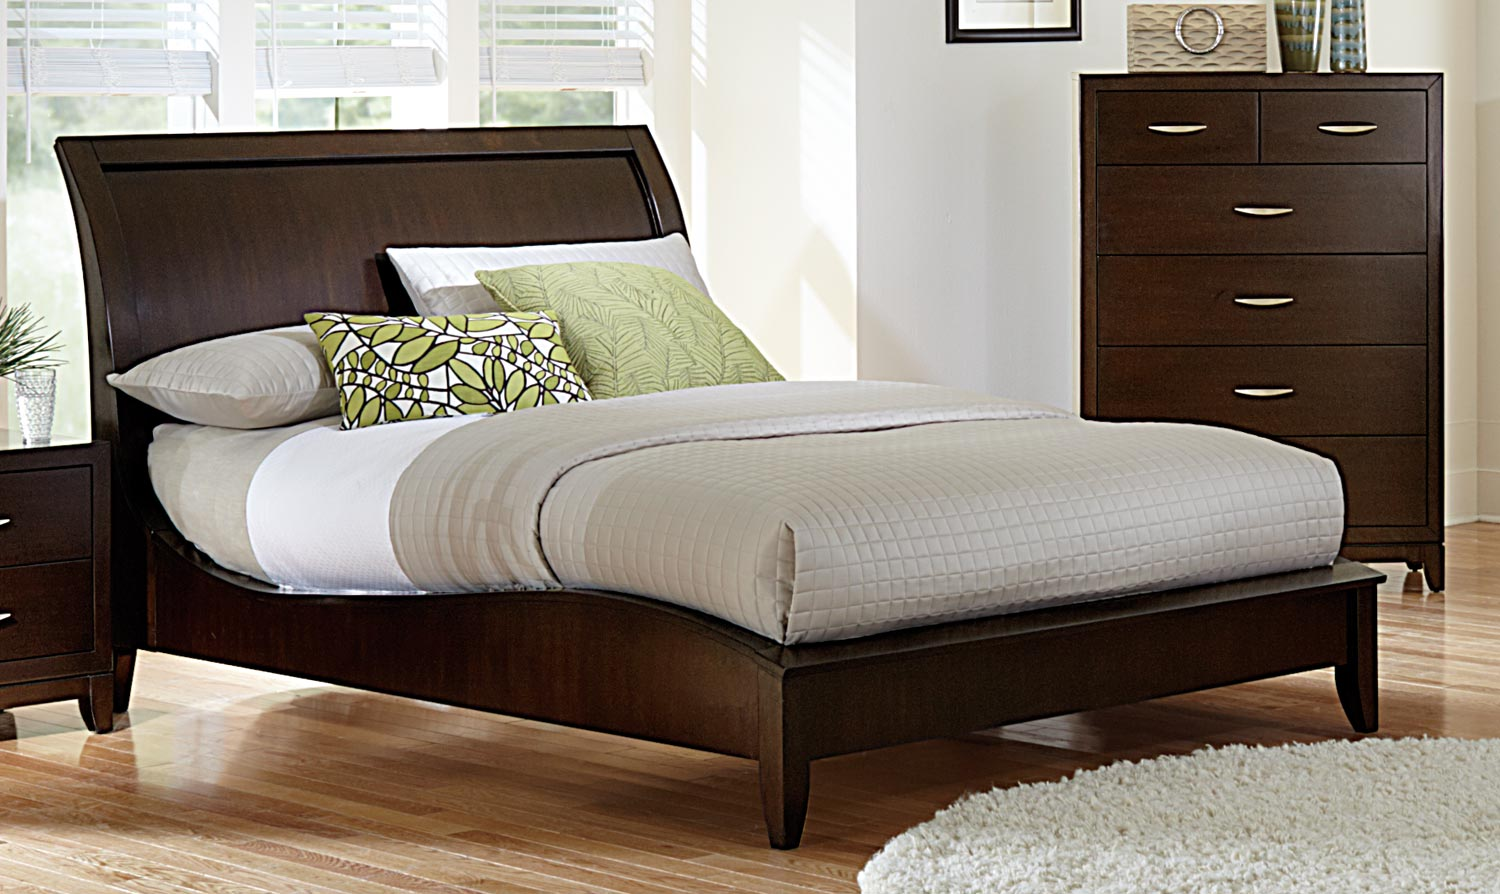 Dark Wooden Bed ~ Homelegance starling sleigh bedroom collection dark